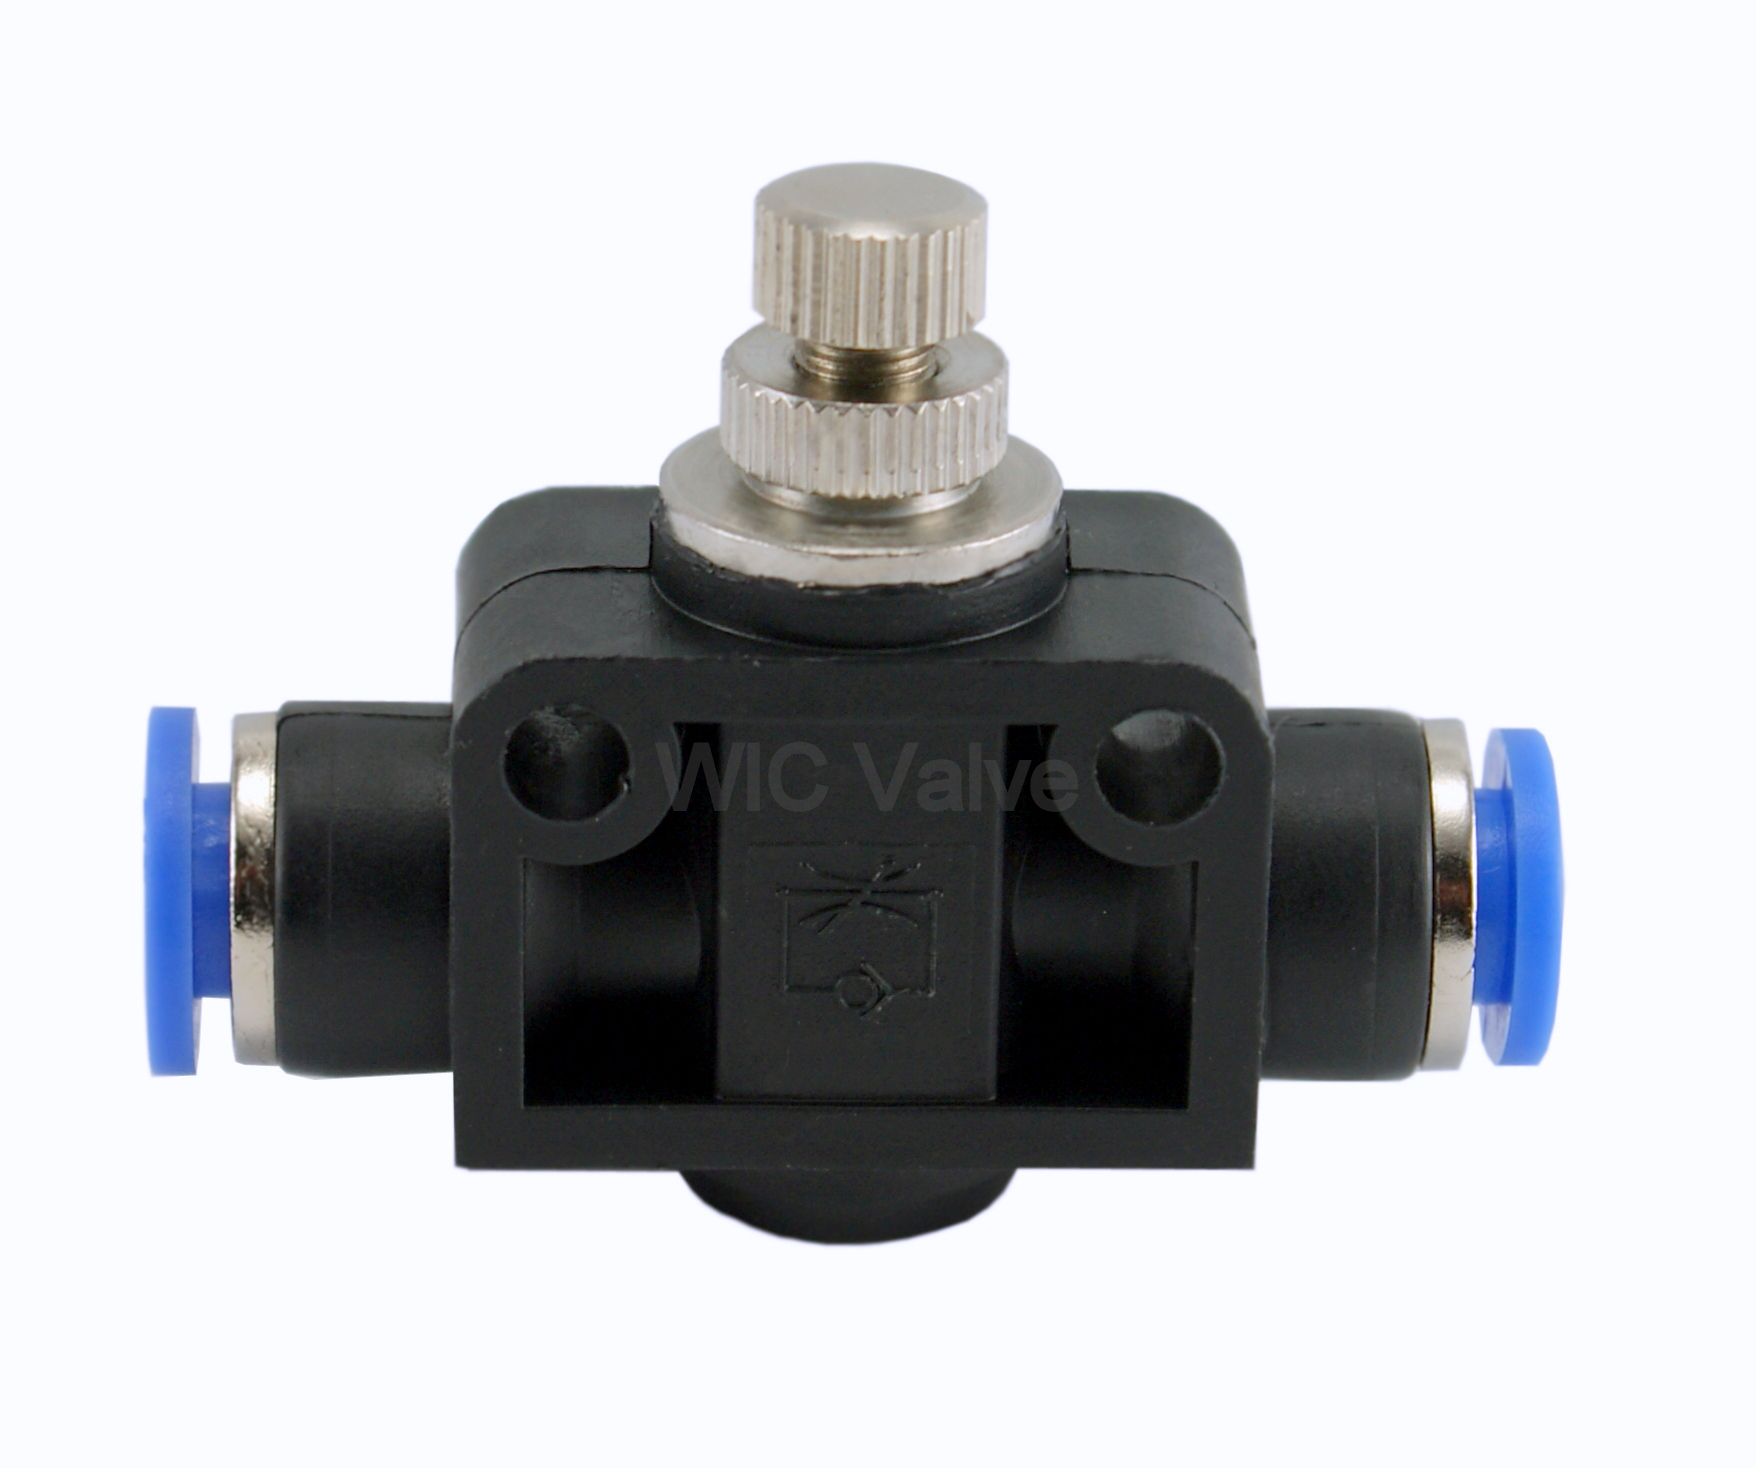 Mixing Valve Piping Diagram in addition Radiant besides 291047729191 besides Flow Valve Wiring additionally Zone Valve Wiring Taco Erie. on taco zone valve 3 way wiring diagram